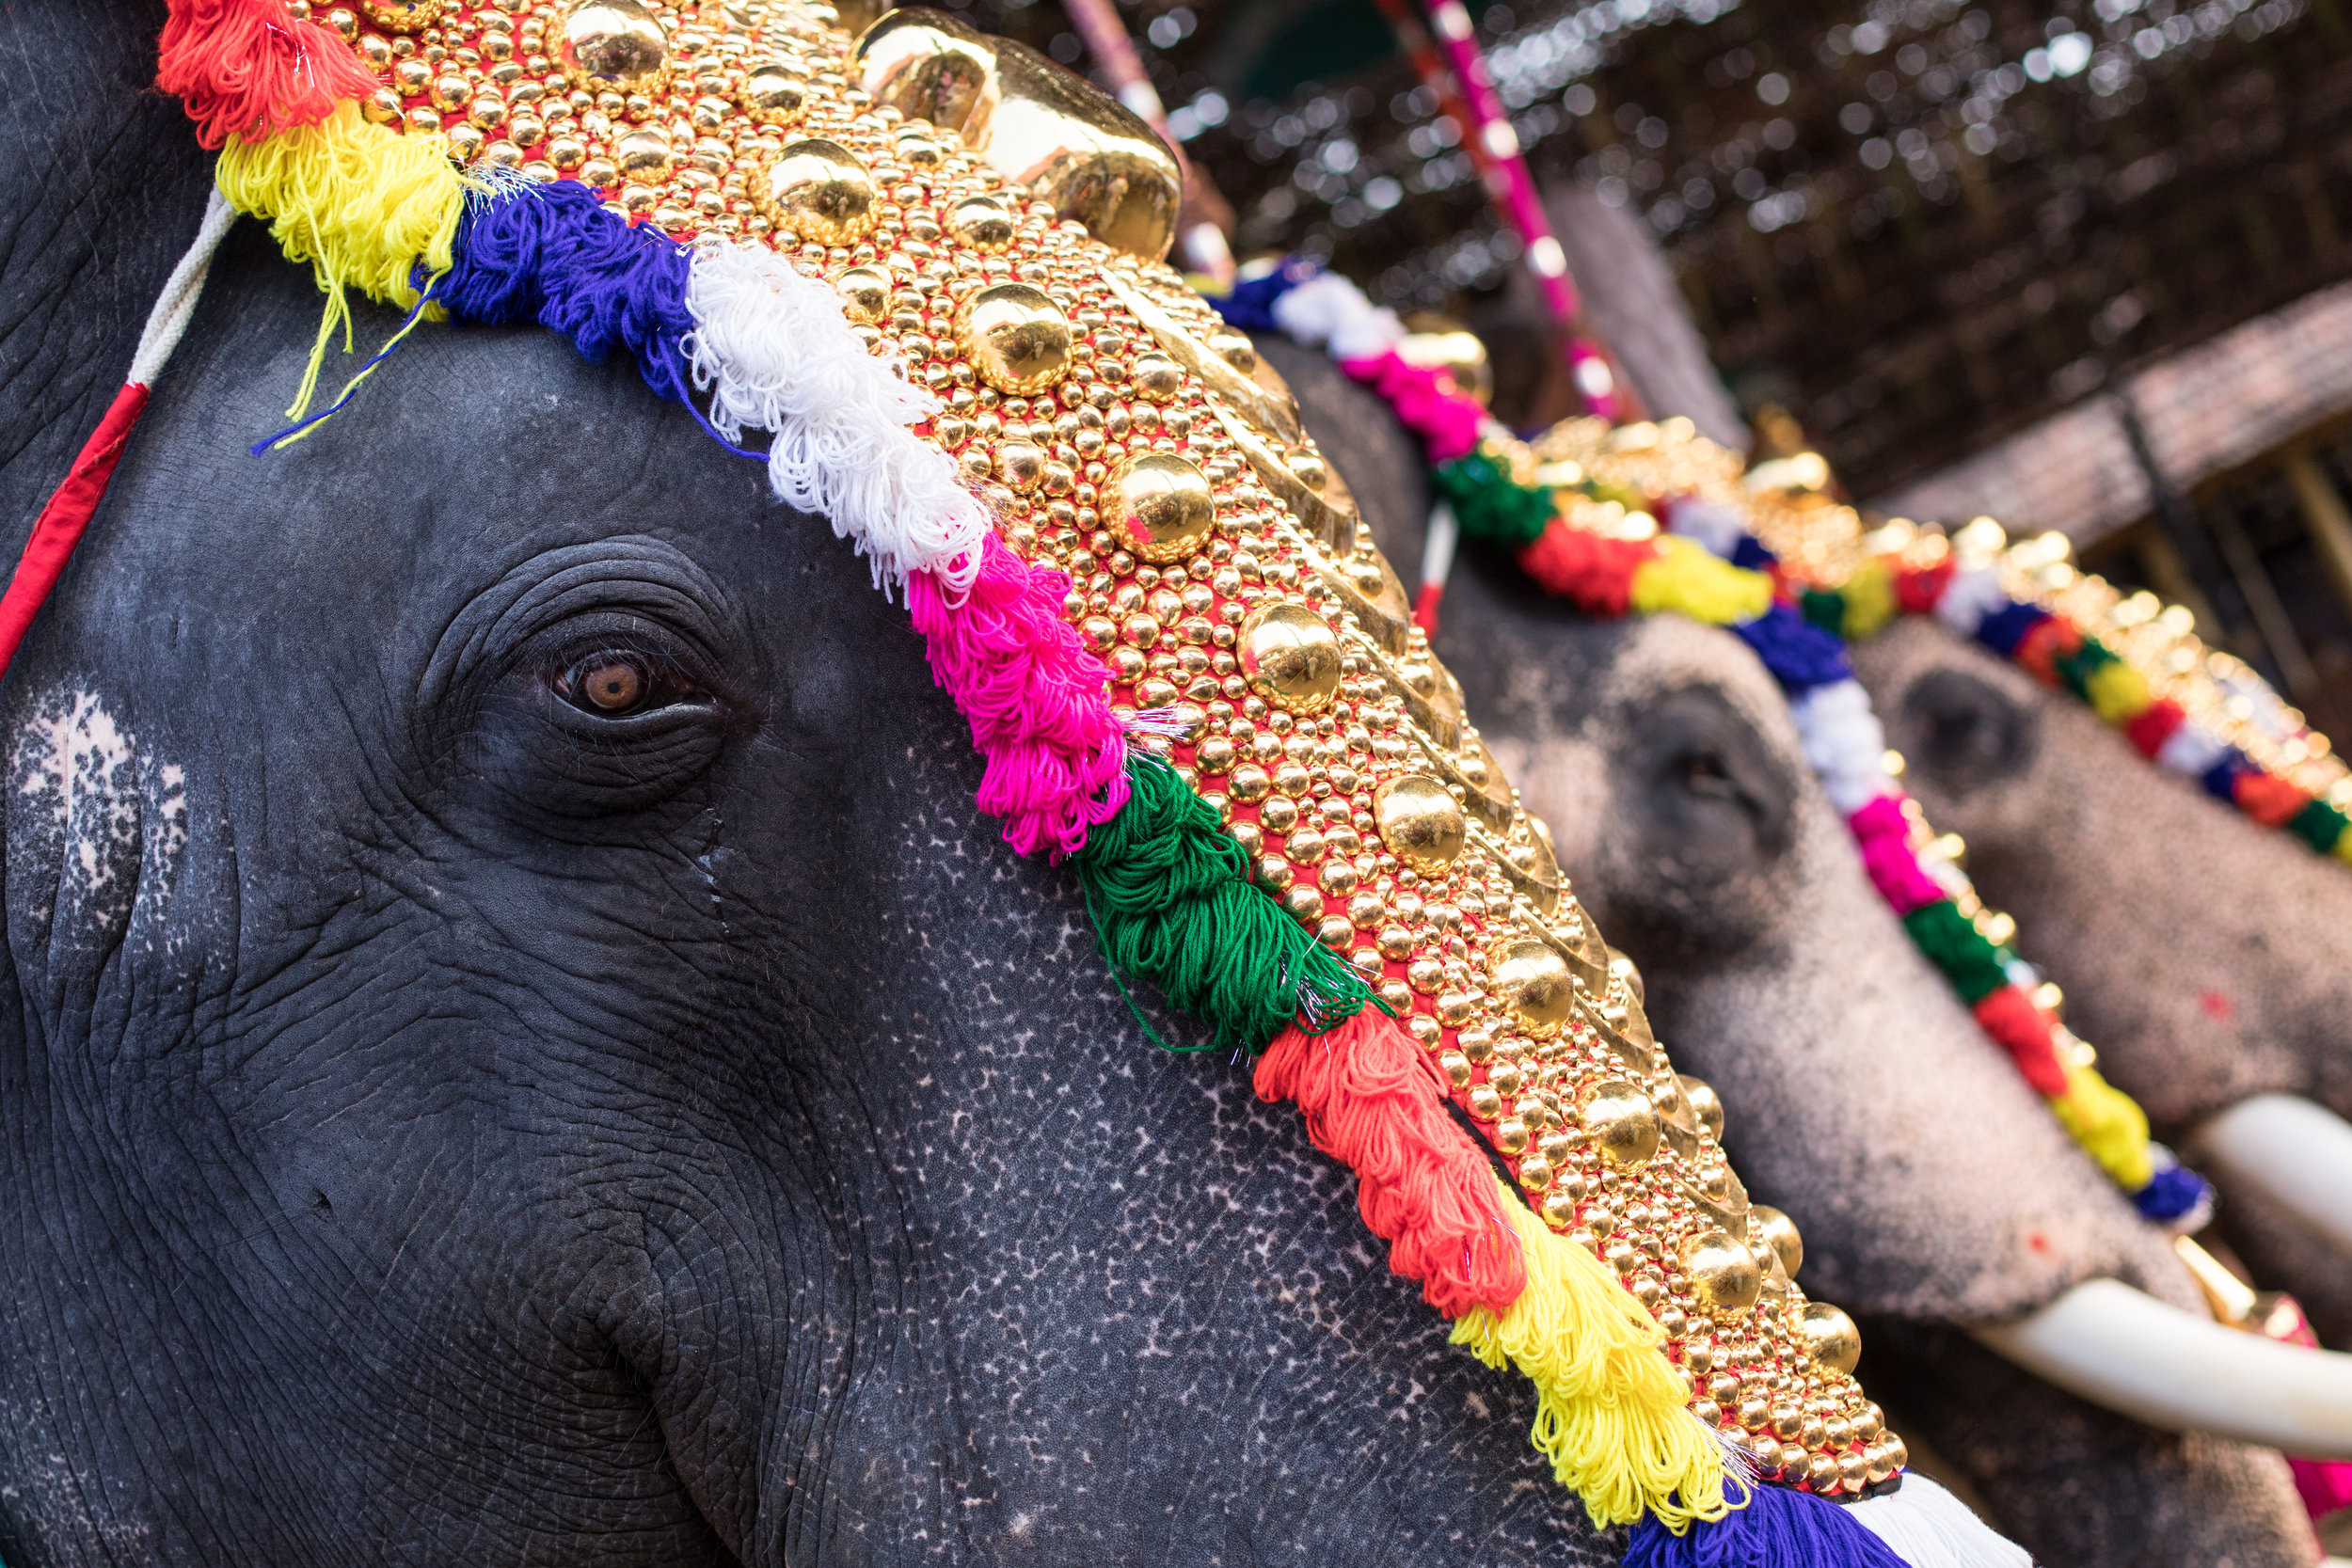 Decorated Elephants at a Festival in India.